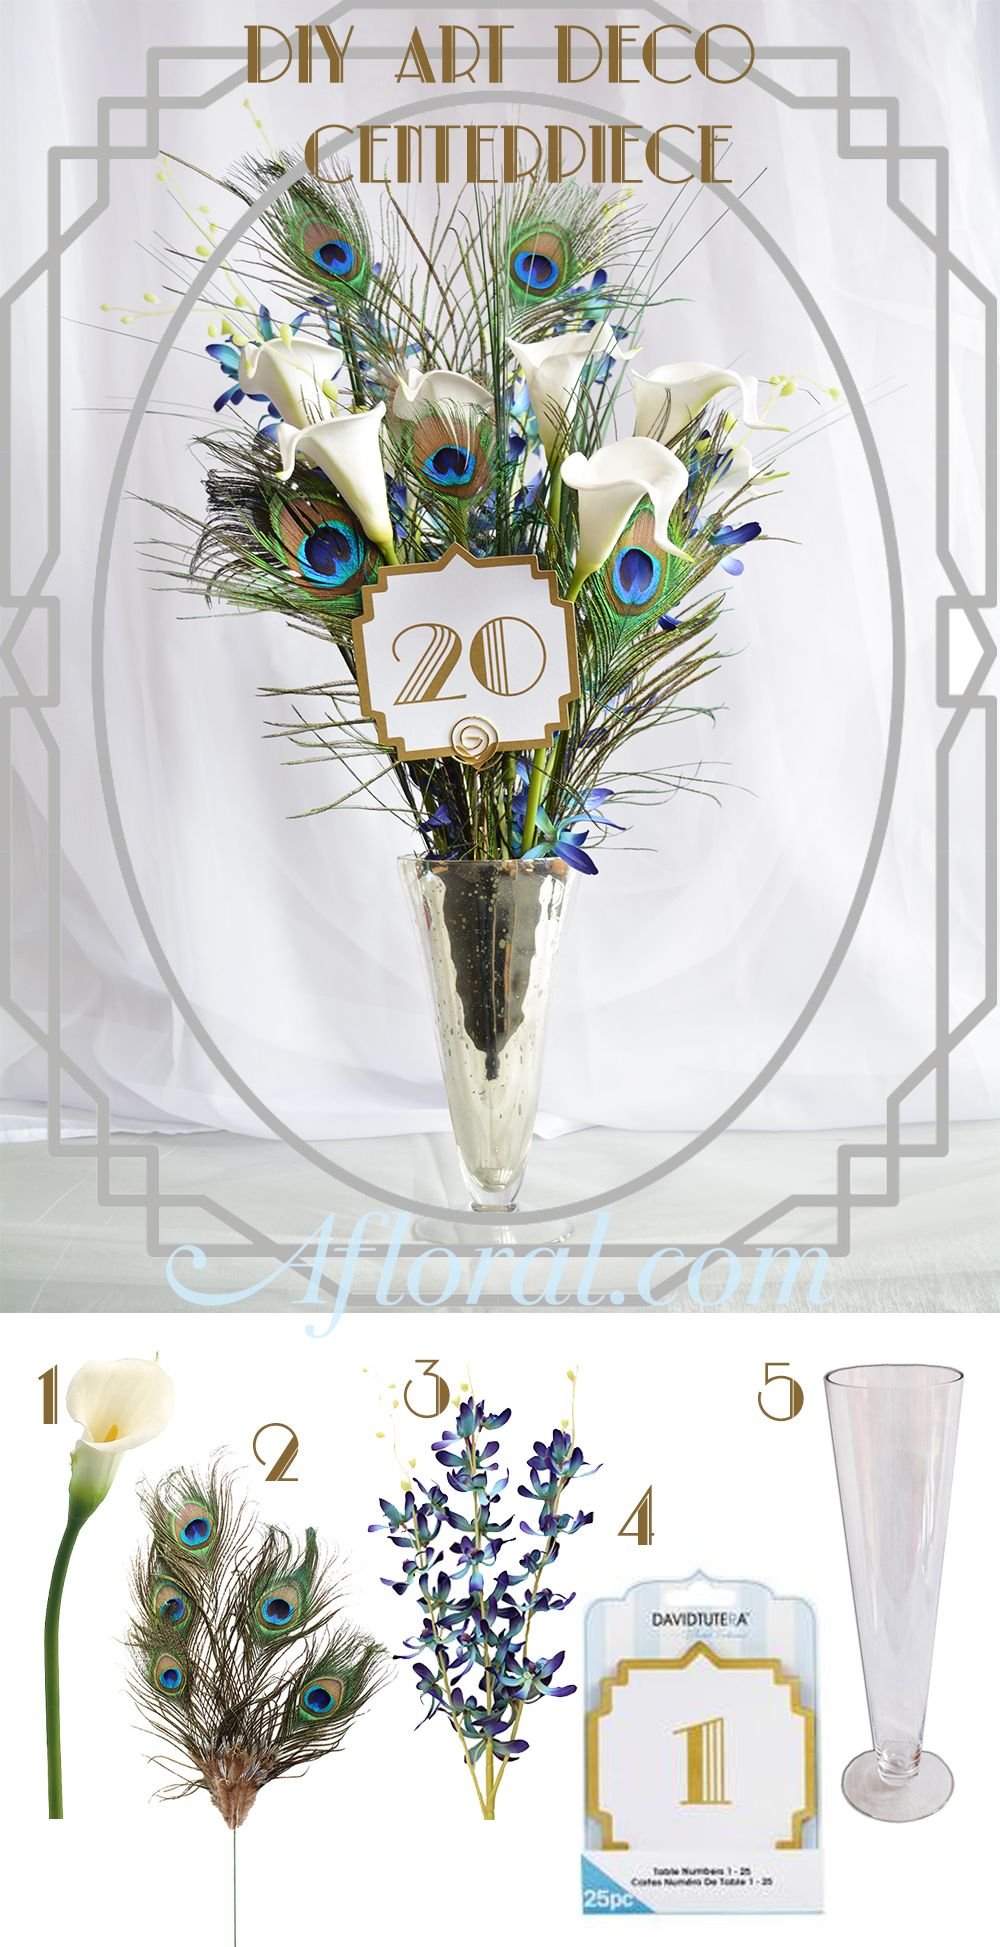 Art Deco Wedding Centerpiece With Peacock Feathers Calla Lily And